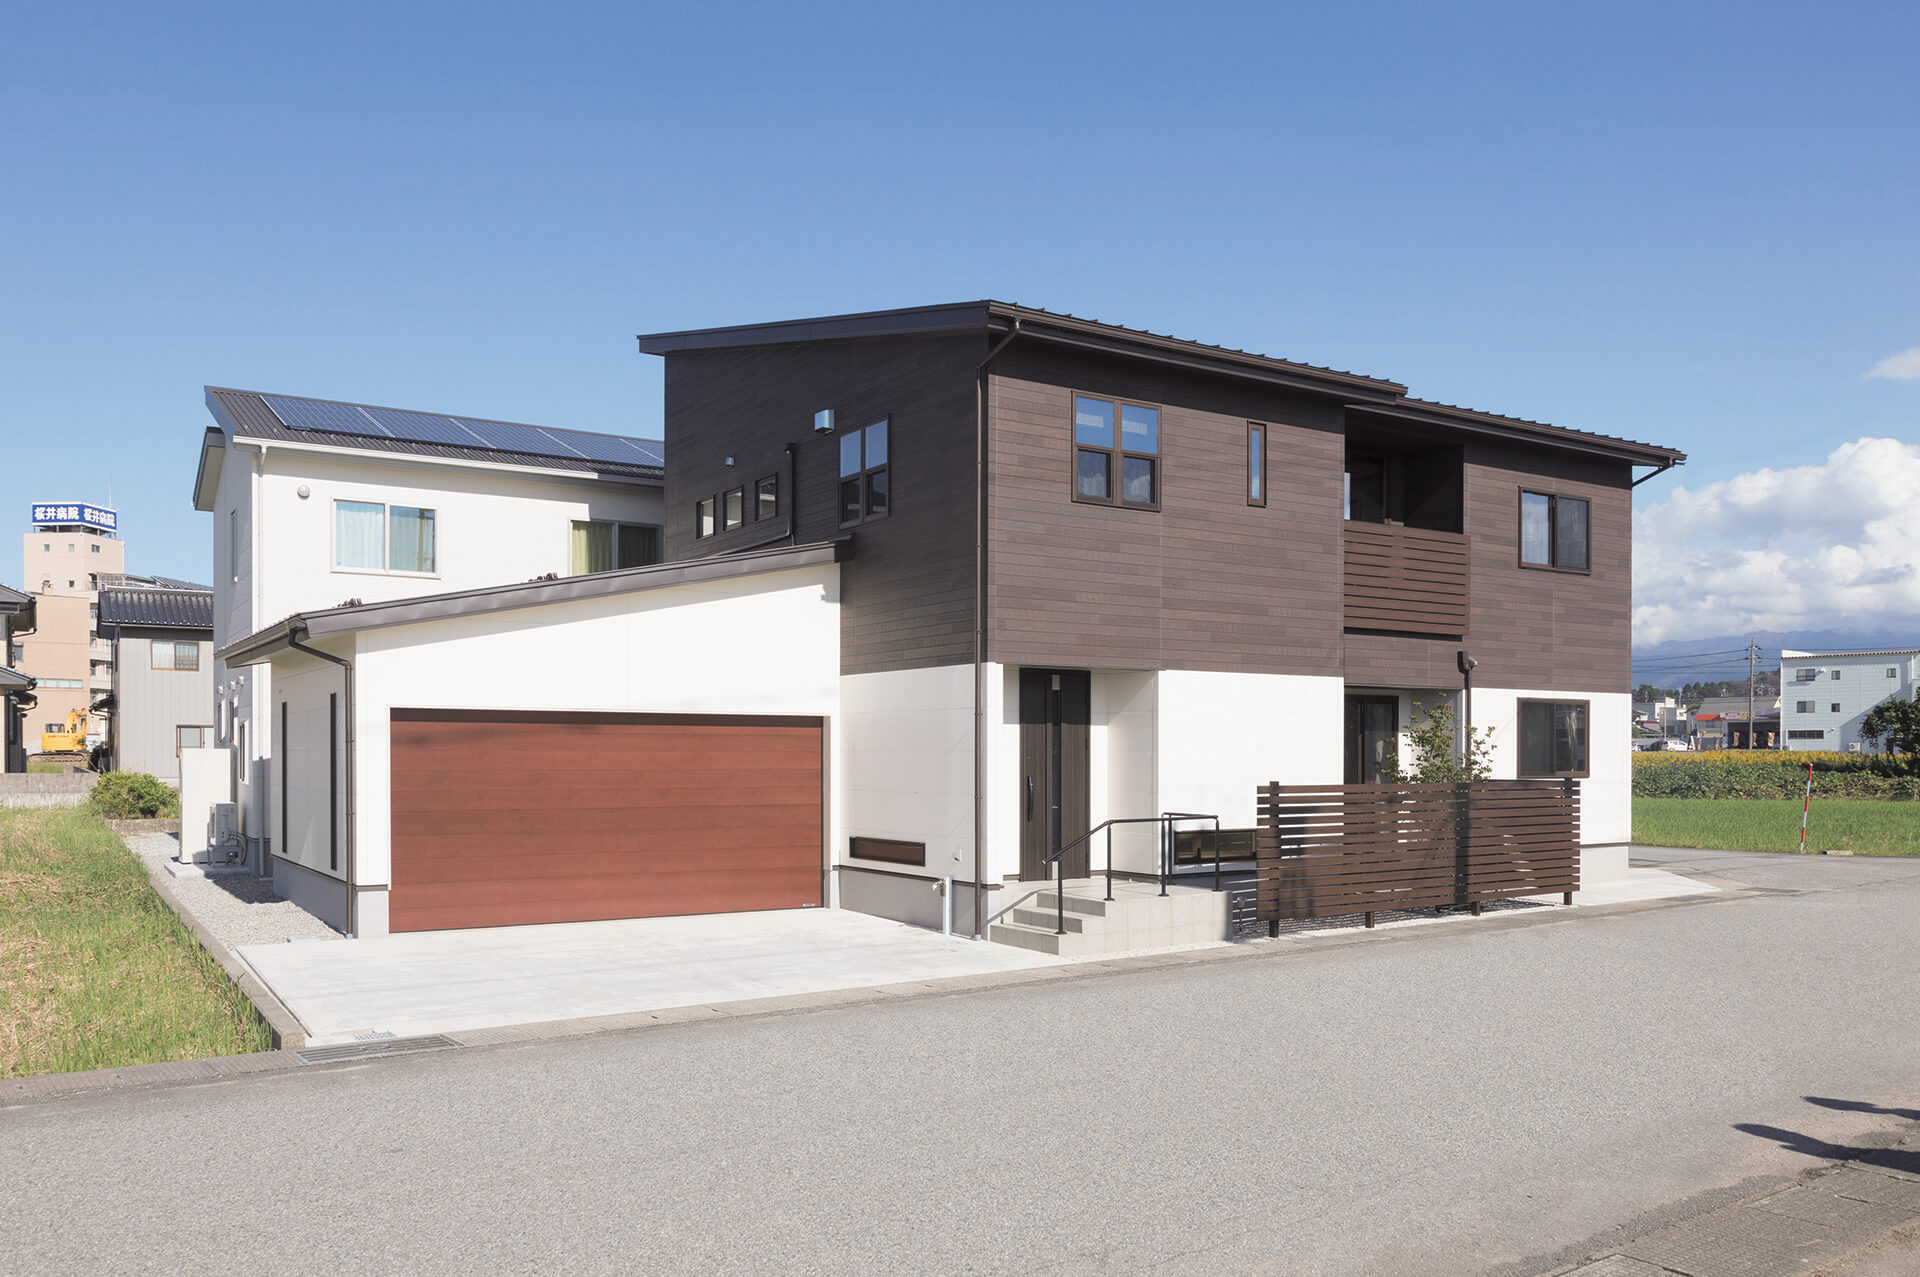 Modern home in Japan featuring Nichiha's dark faux wood fiber cement panels RoughSawn in color Espresso